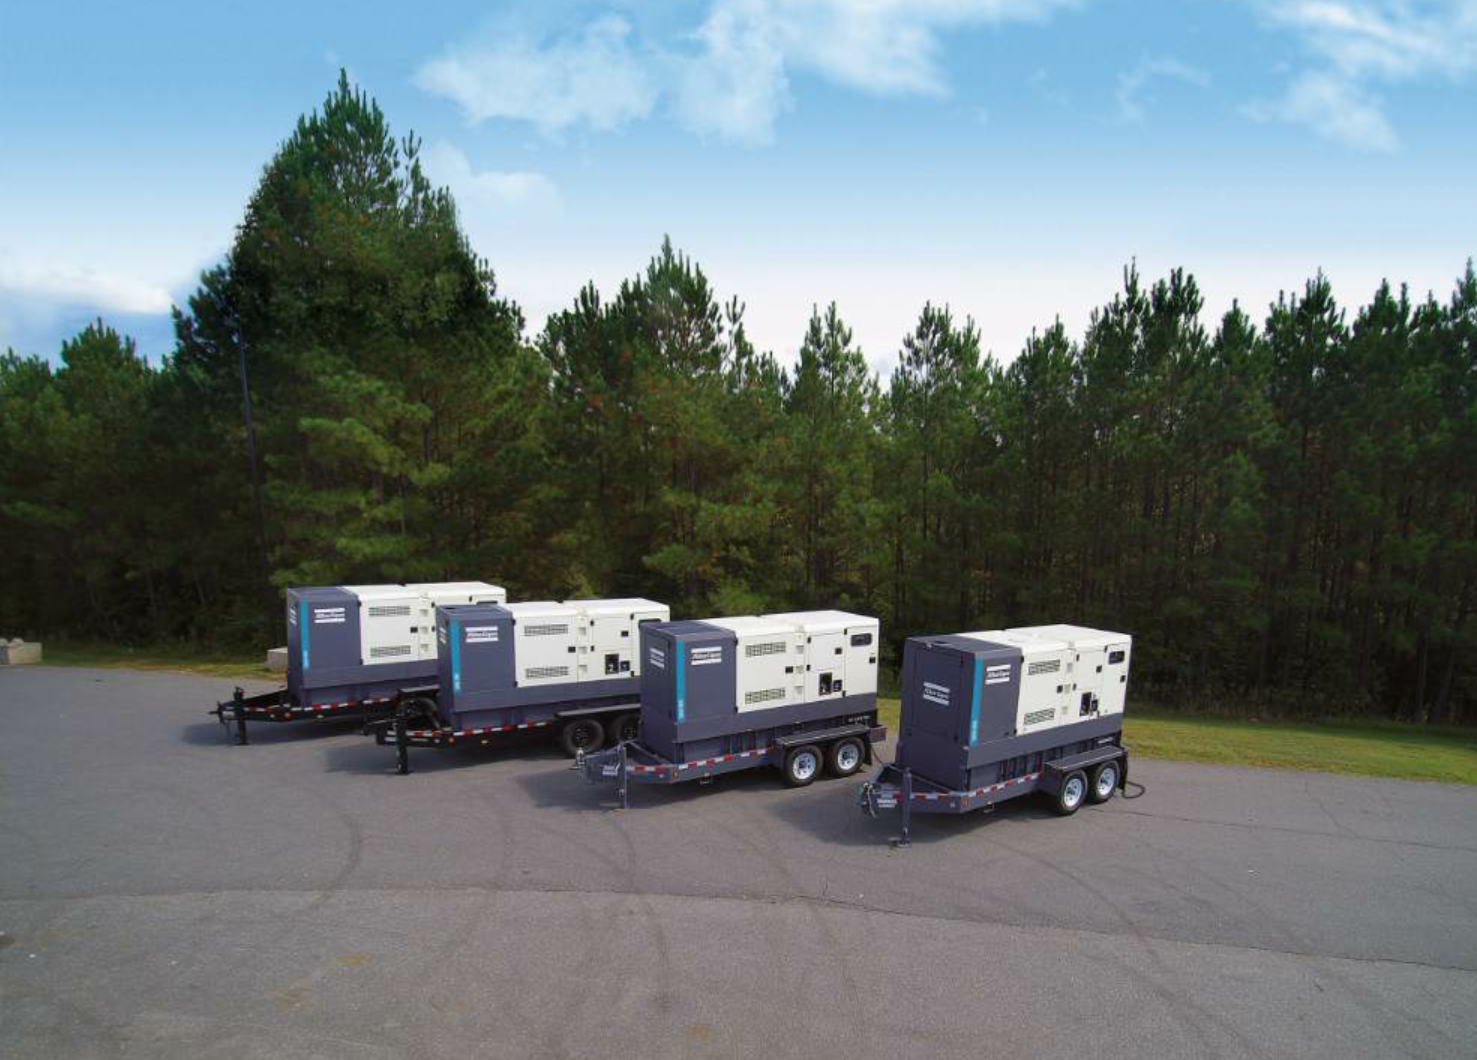 A sampling of the new QAS generators from Atlas Copco shows the trailer configuration.